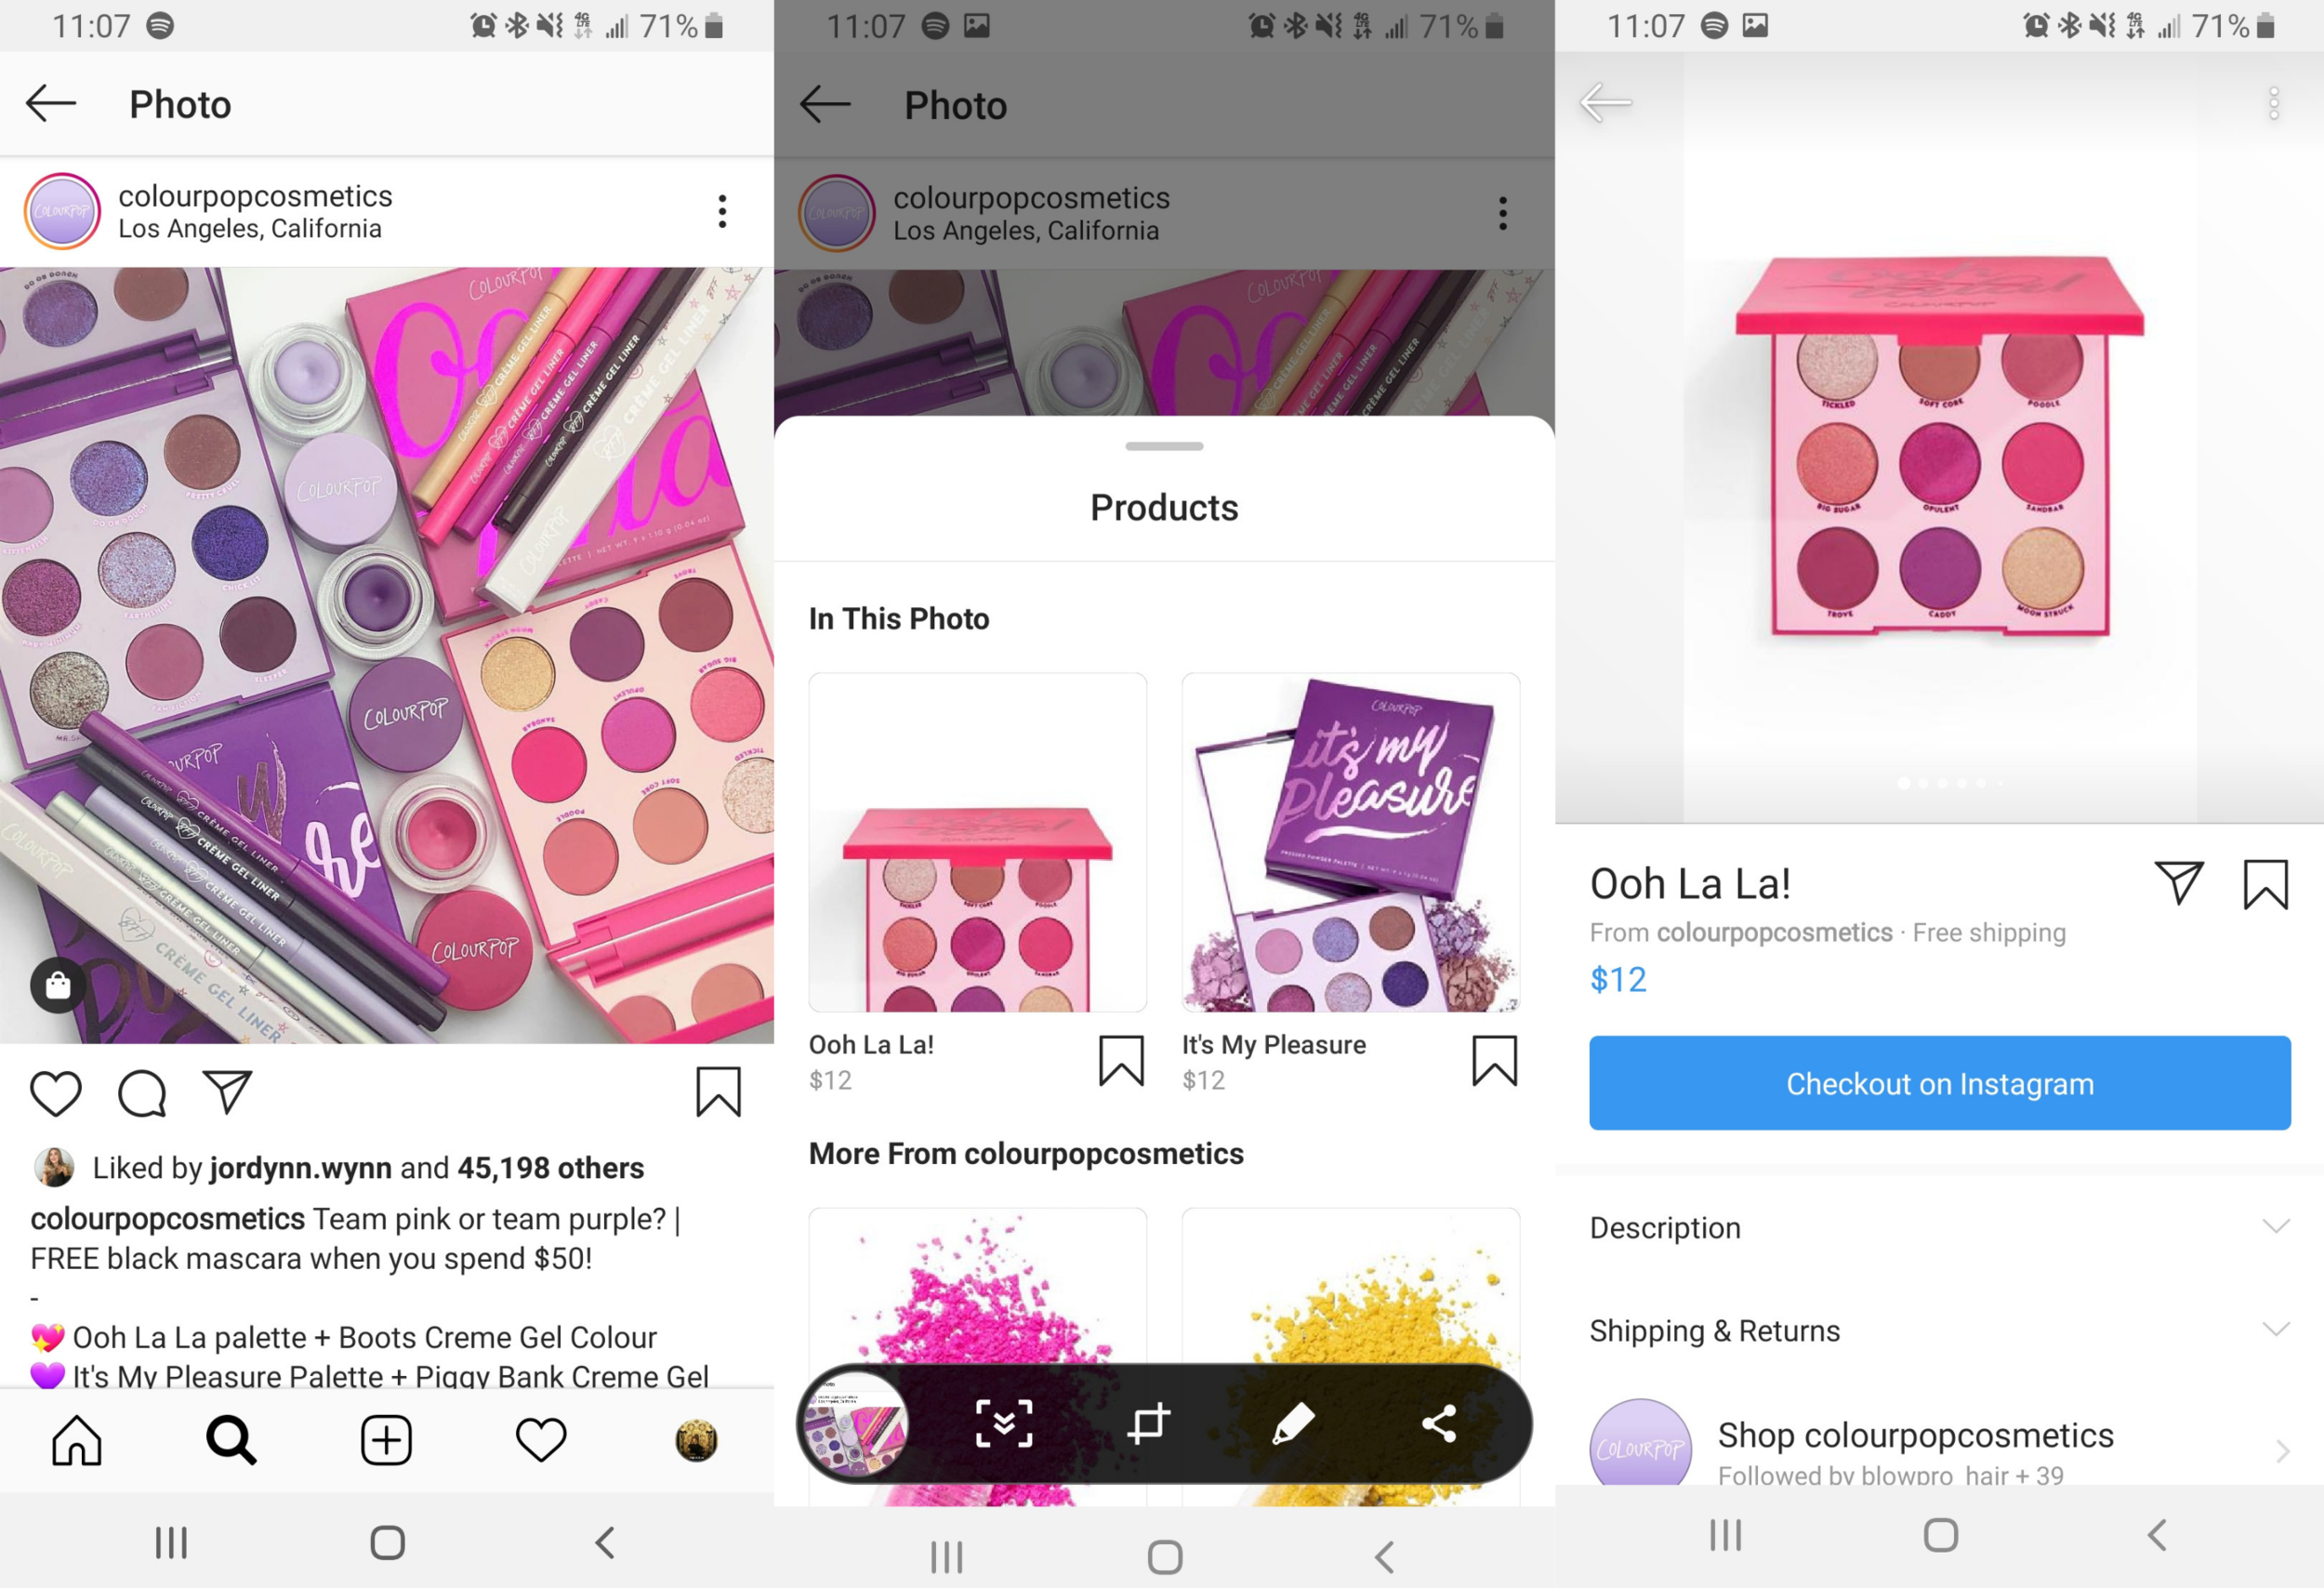 Instagram shopping path using new Checkout feature.